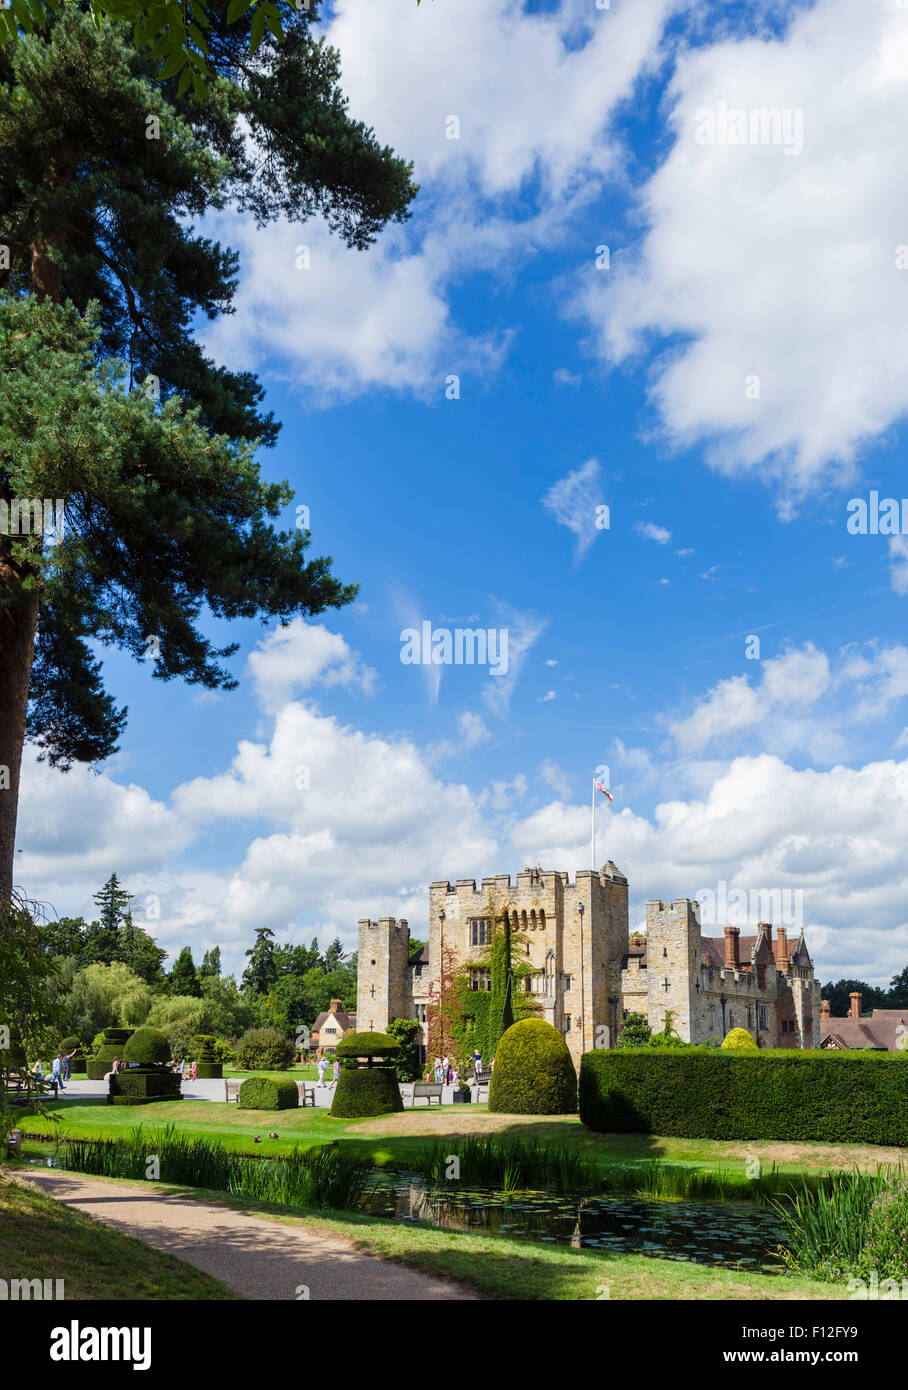 Hever Castle, family home of Anne Boleyn, Hever, Kent, England, UK Stock Photo